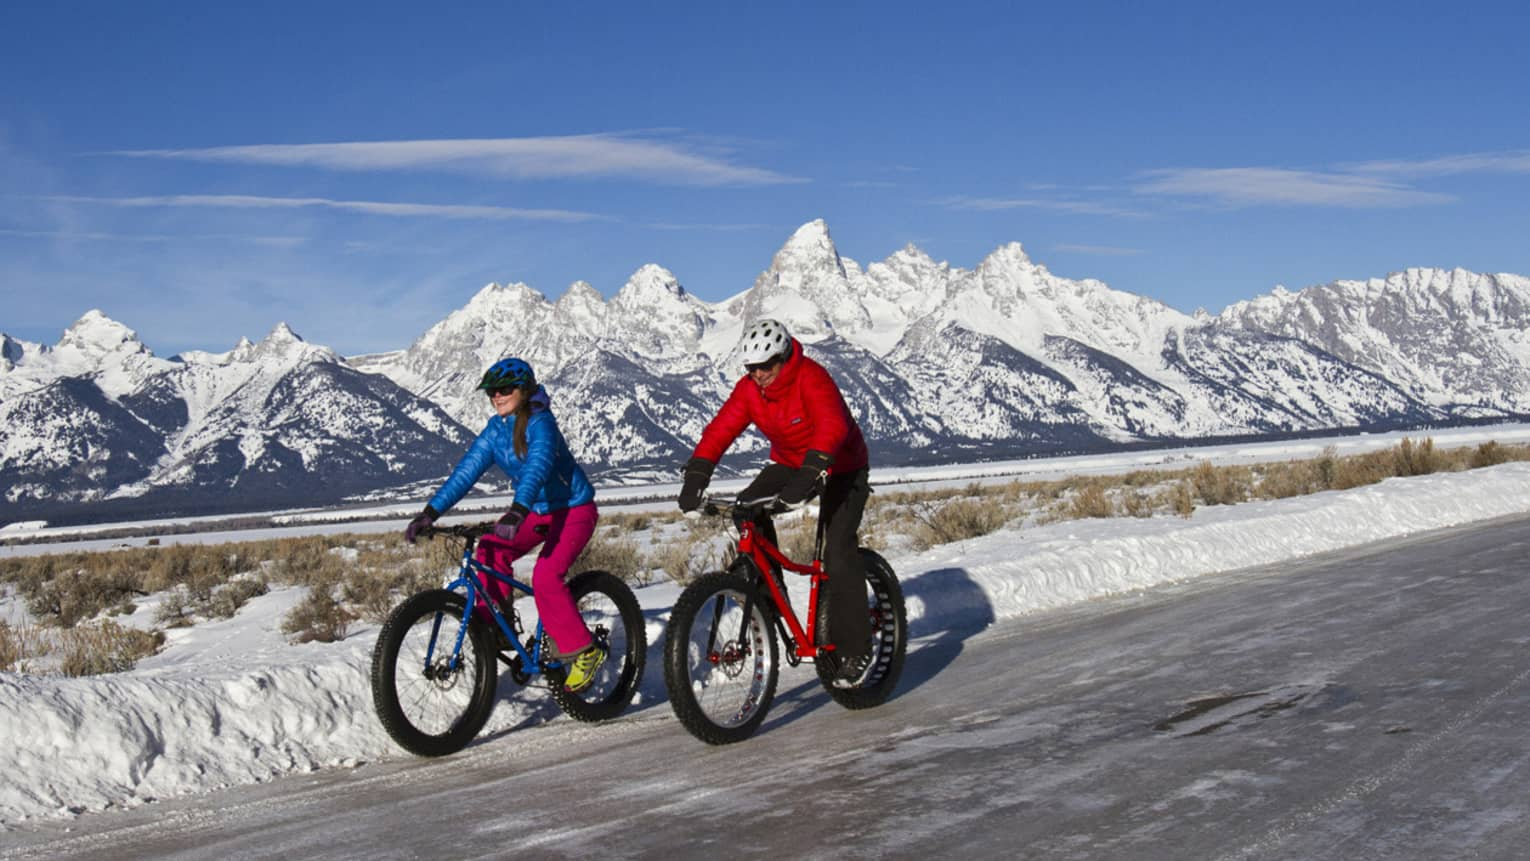 A man and woman bike down a path, snow-capped mountains and blue sky in the background